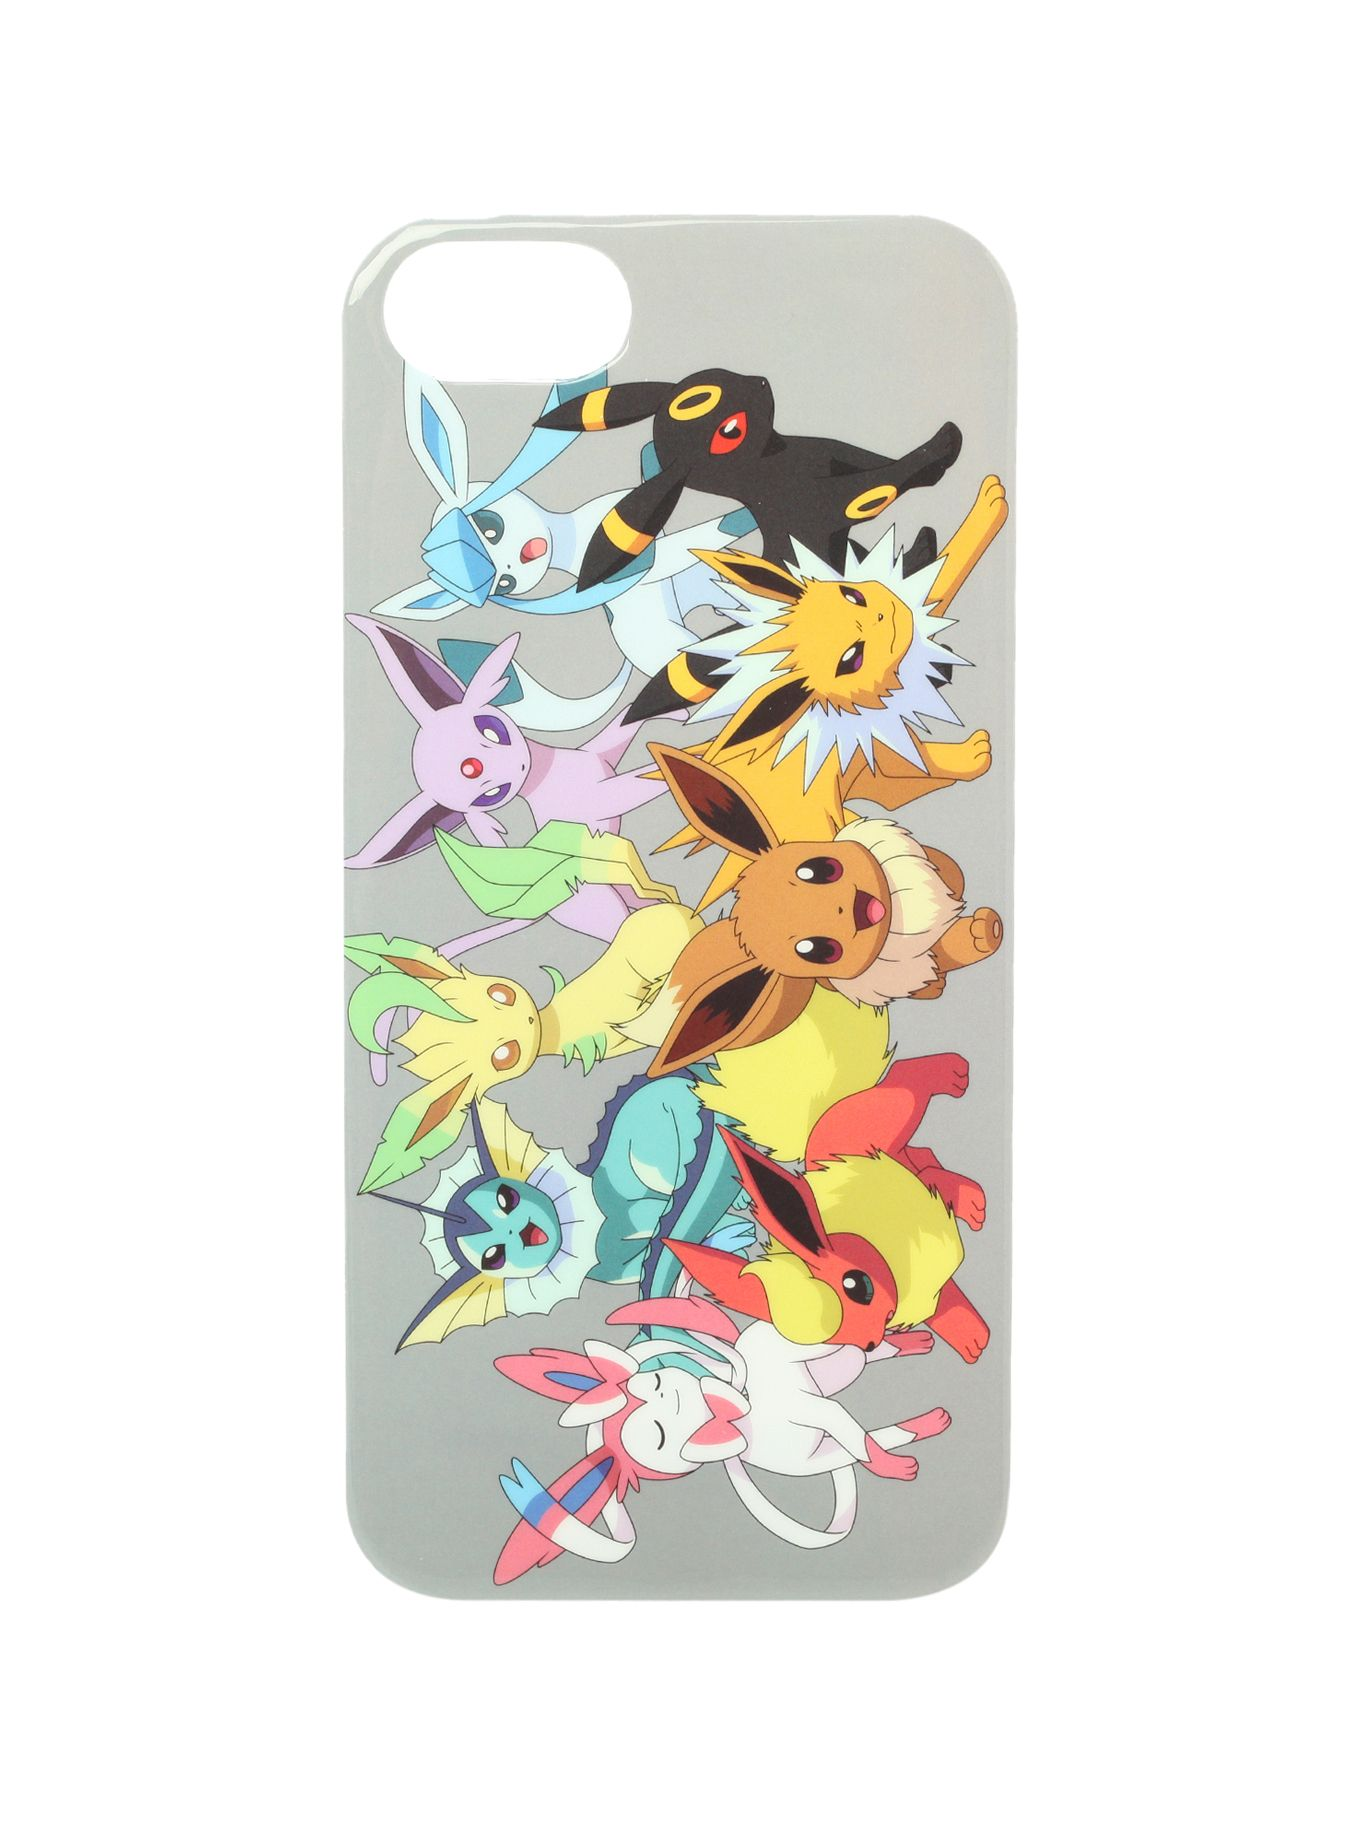 Eevee Iphone  Case